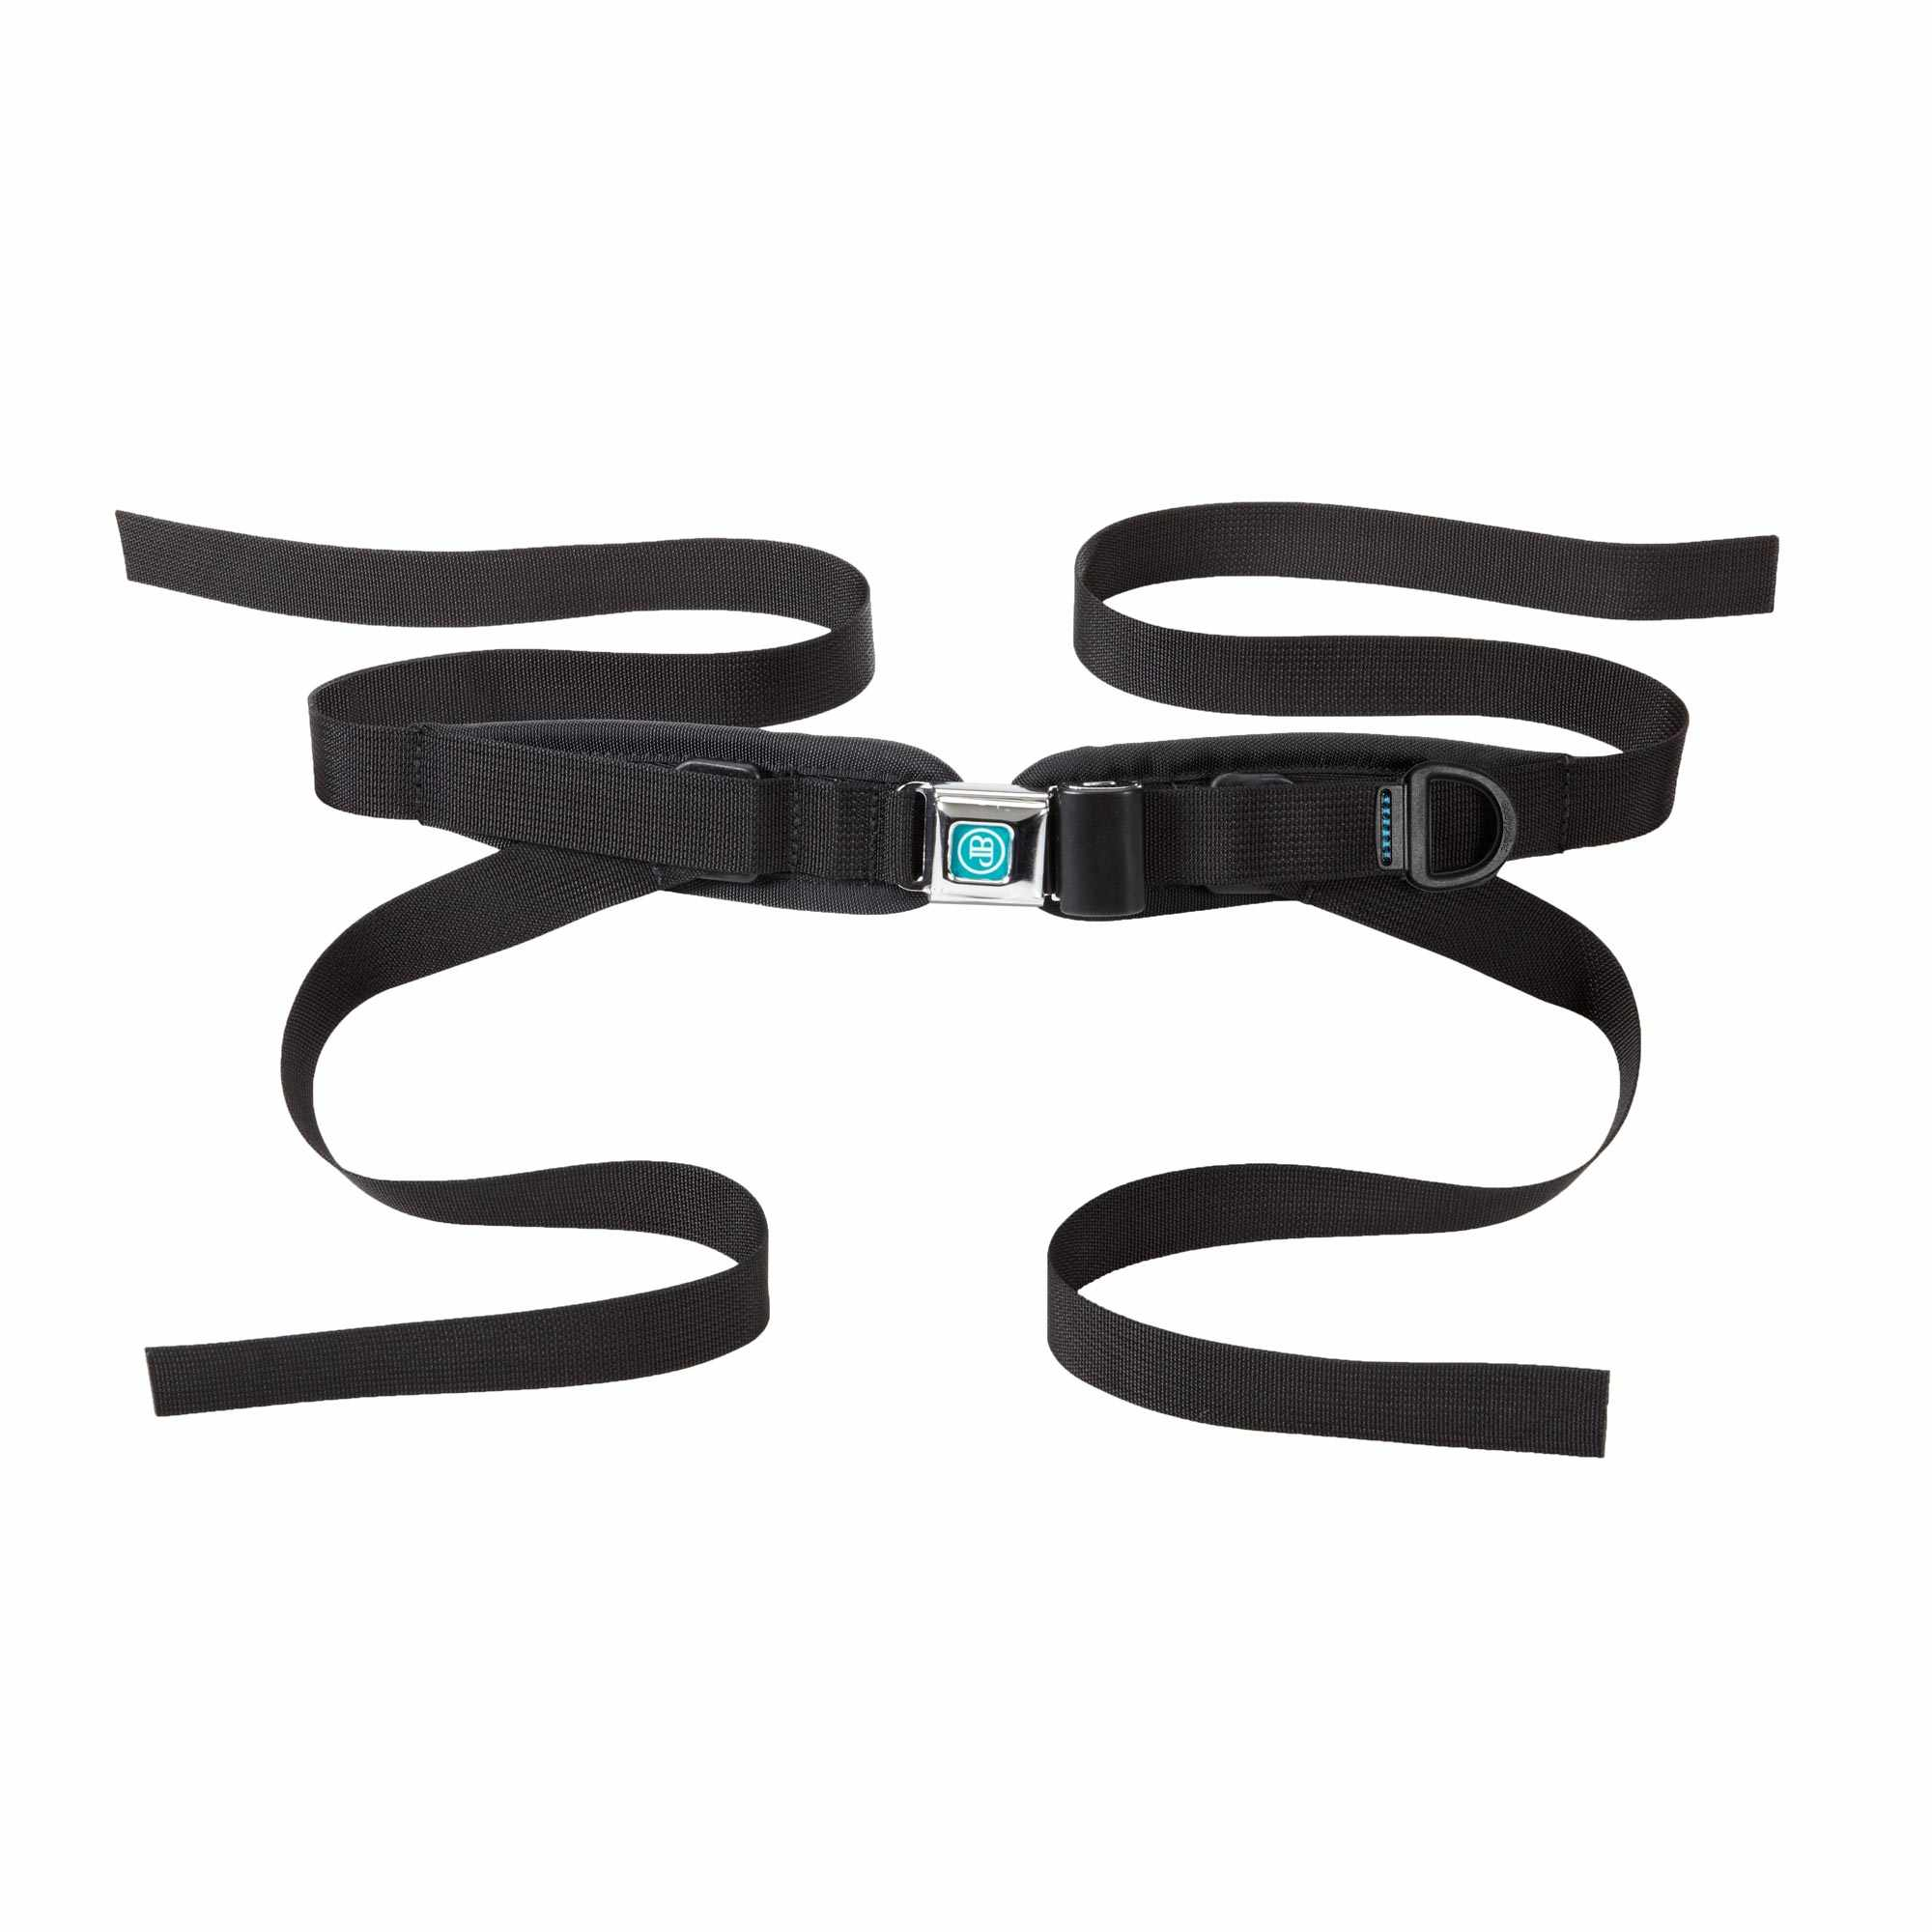 Bodypoint sub-ASIS compatible center-pull four point padded hip belt with metal push button buckle - small